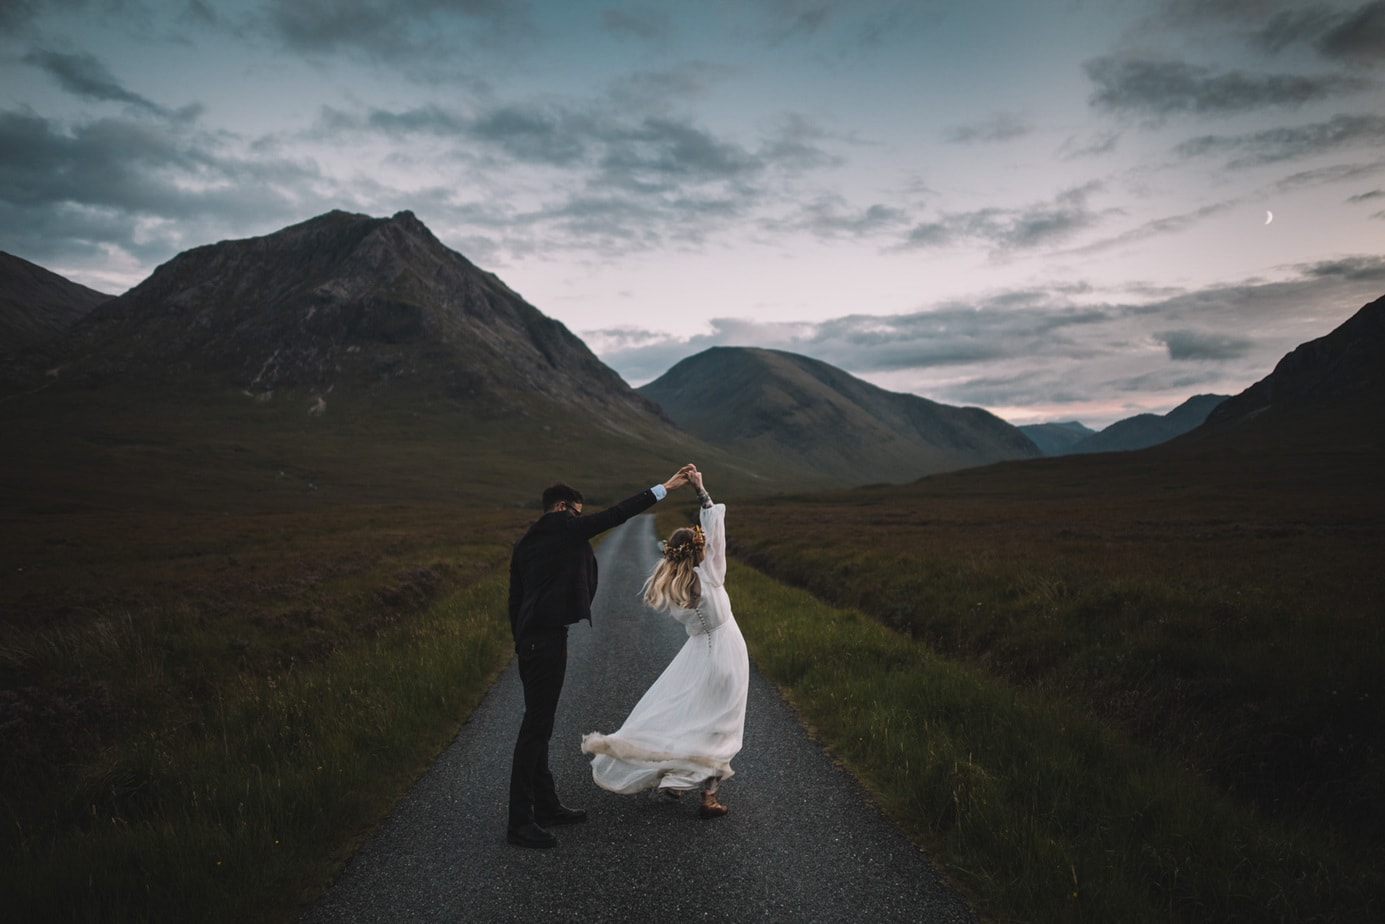 Set on the road to Glen Etive, A bride is twirling around her groom at blue hour and a little moon can be seen between the hills.